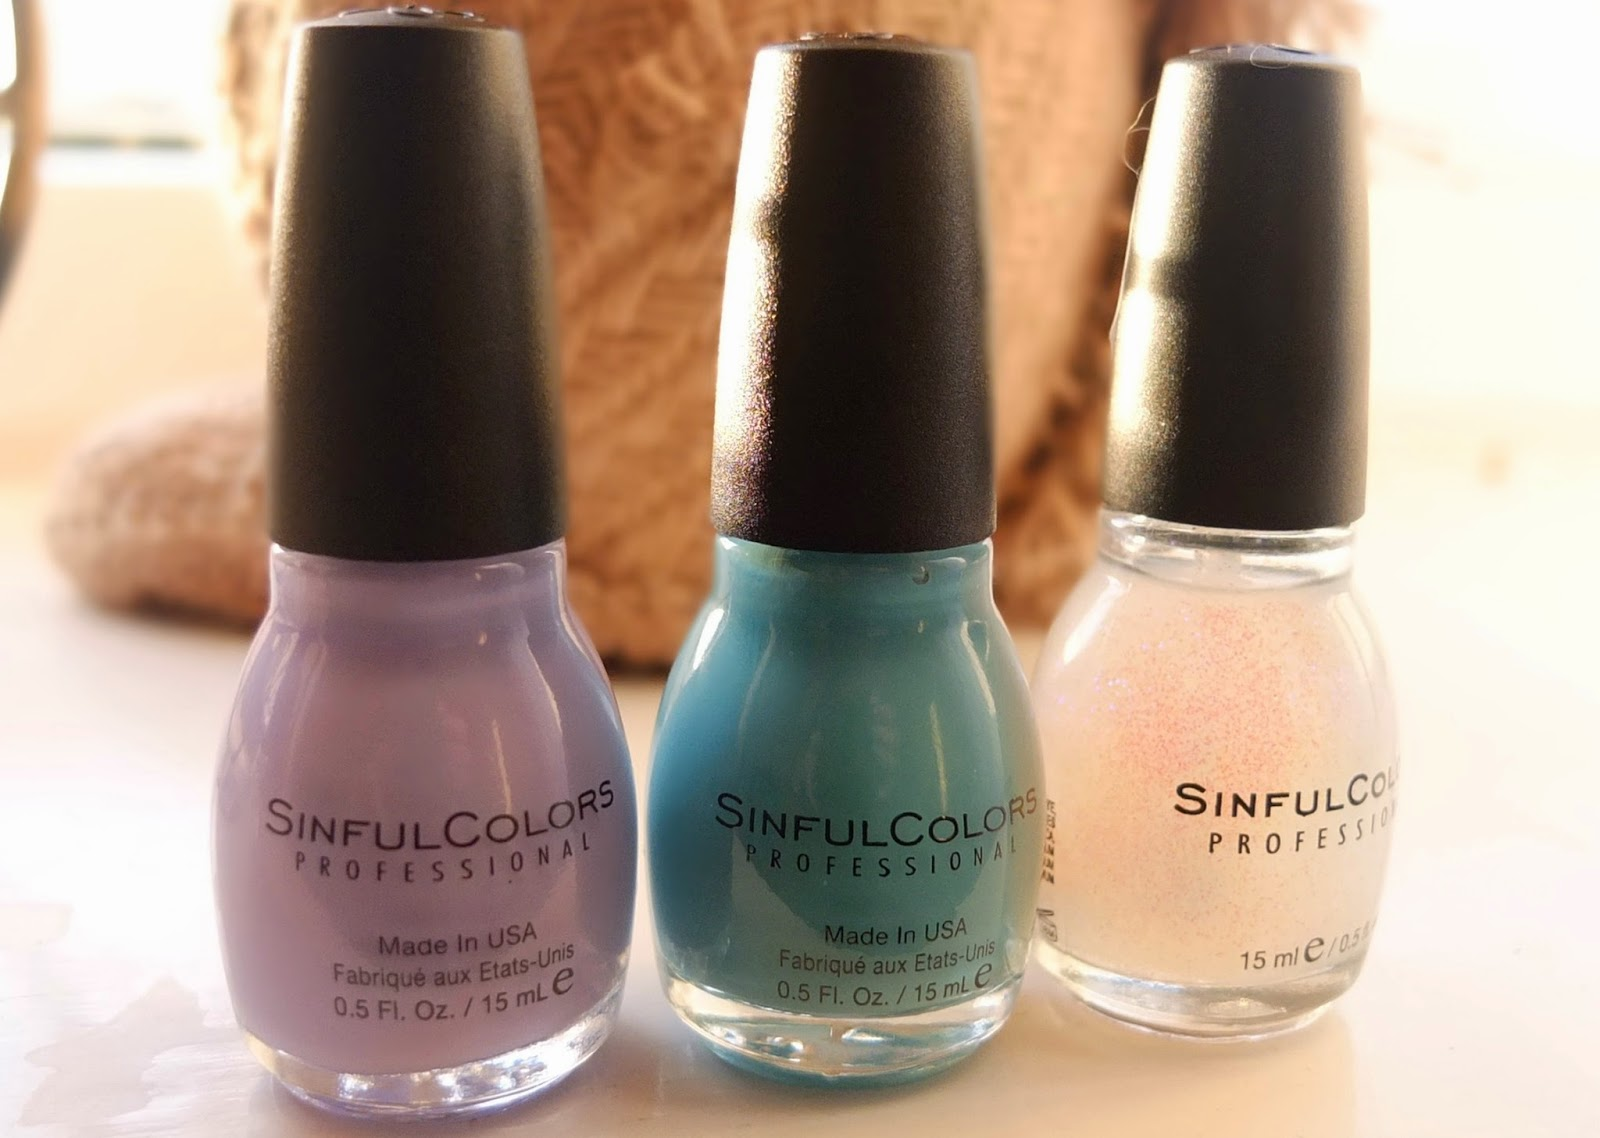 Sinful Colors Nail polishes review on Hello Terri Lowe, UK beauty blog.